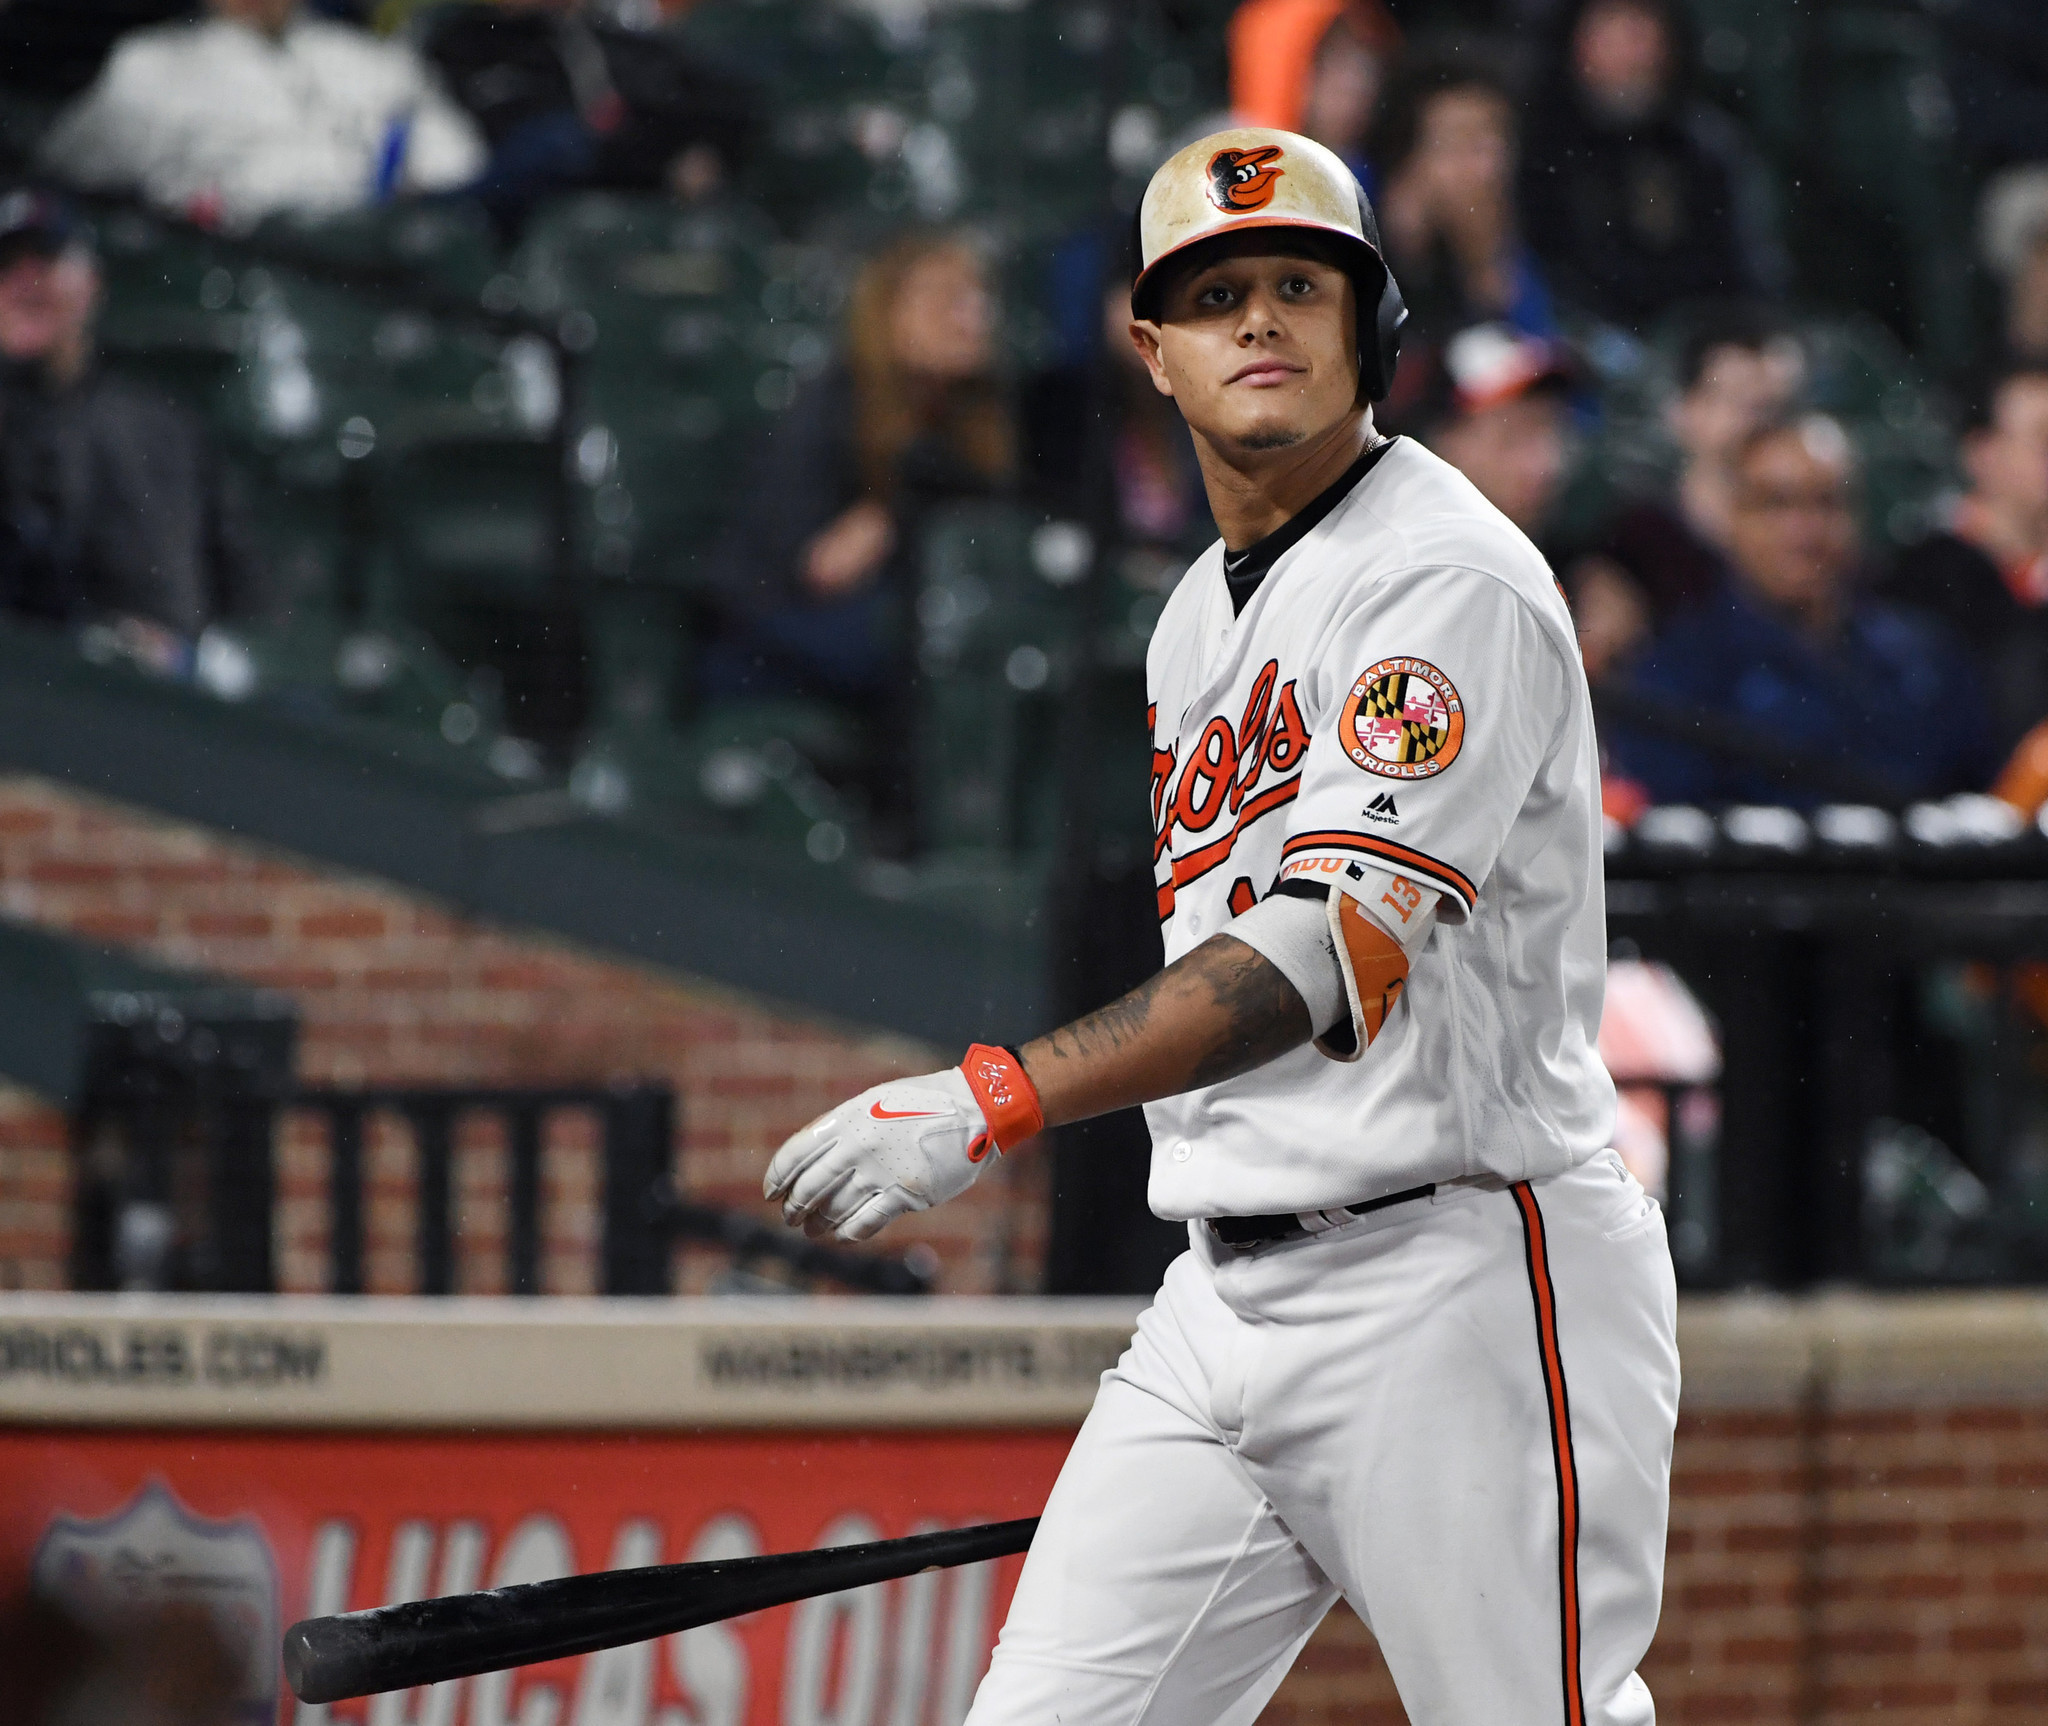 Bal-orioles-on-deck-what-to-watch-wednesday-afternoon-vs-twins-20170524